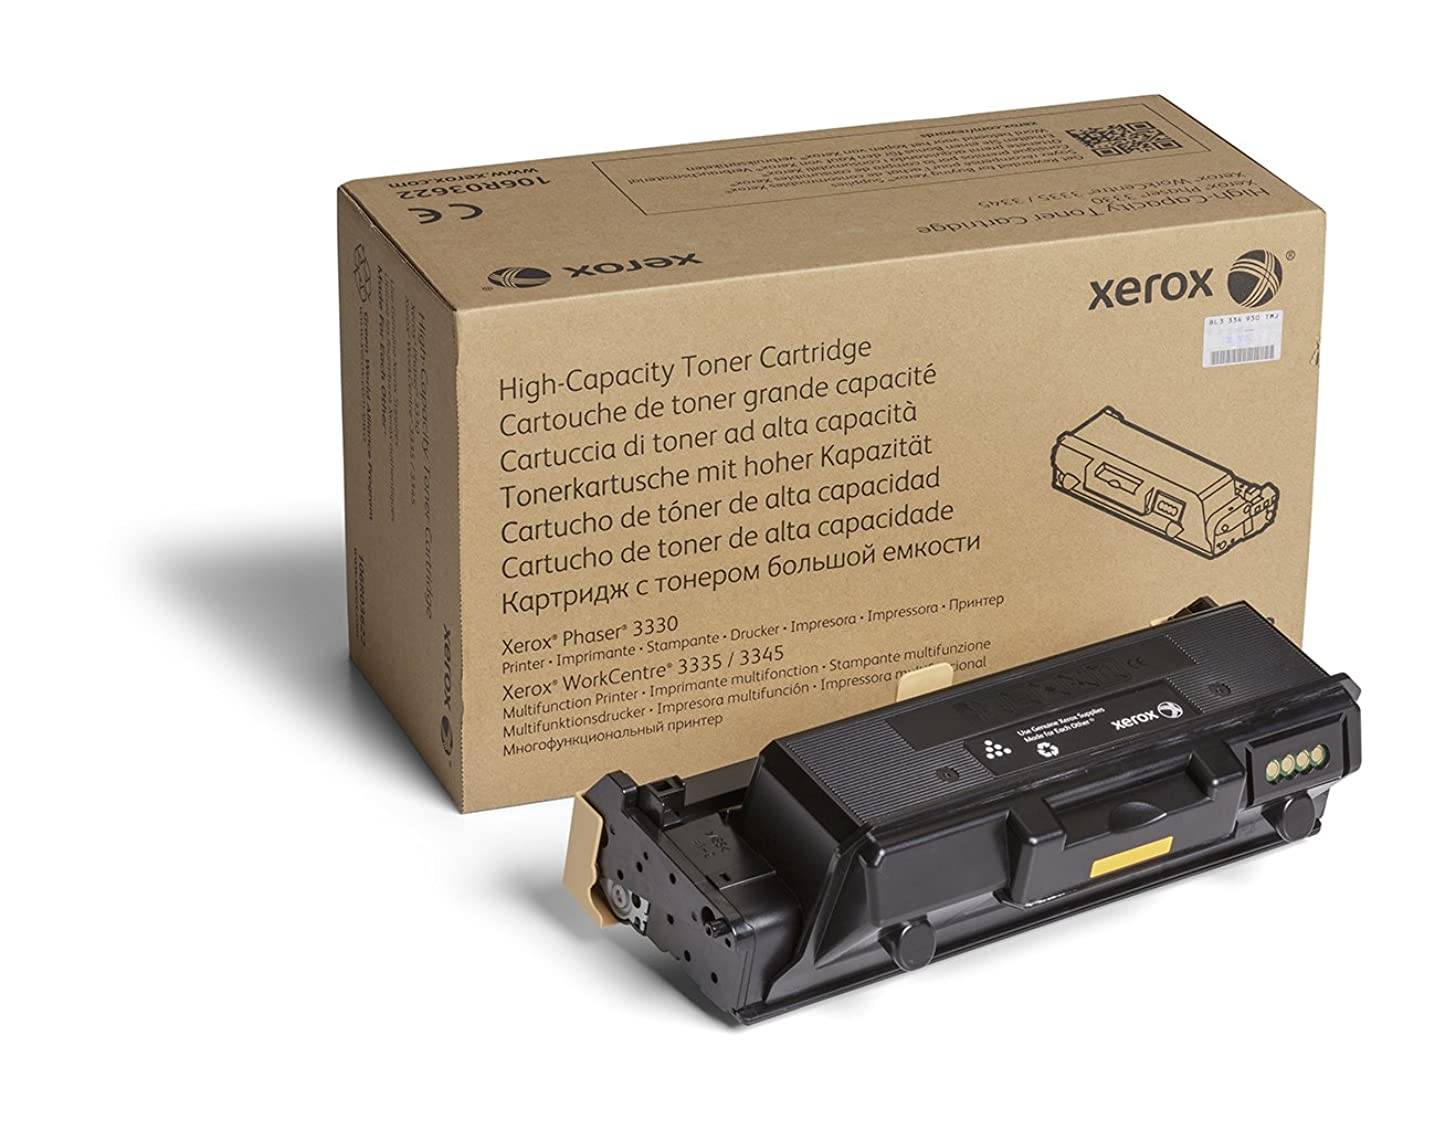 Genuine Xerox Black High Capacity Toner Cartridge (106R03622) - 8,500 Pages for use in Phaser 3330, WorkCentre 3335/3345